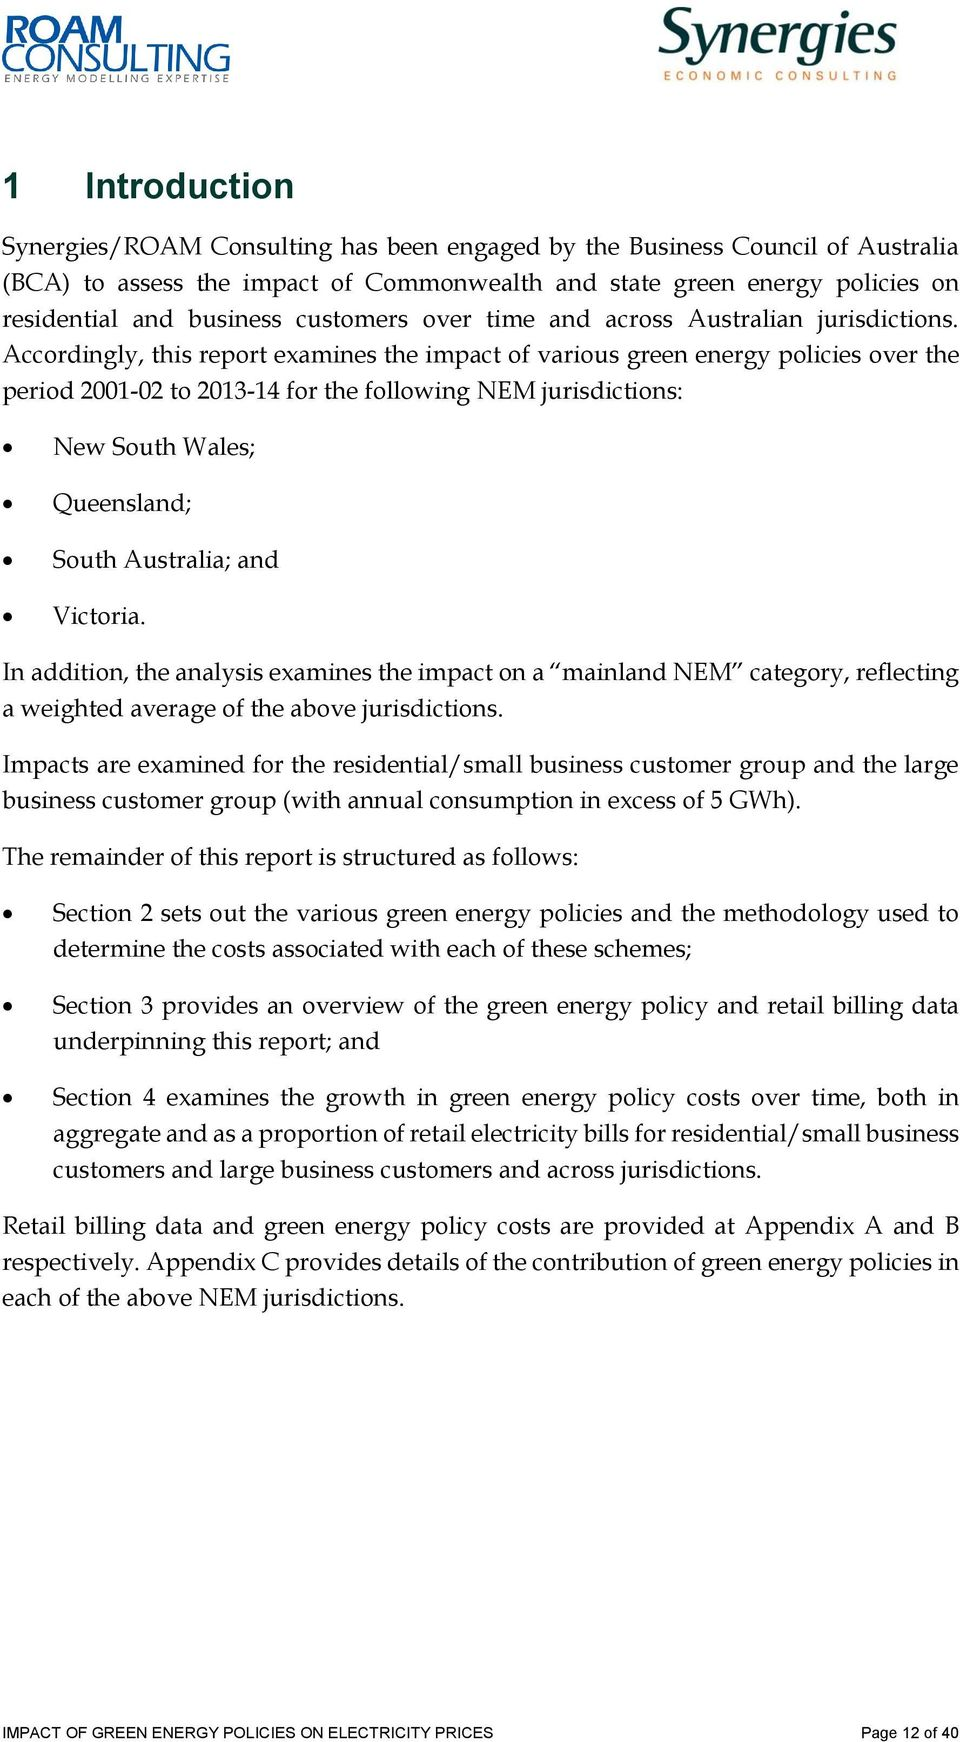 Accordingly, this report examines the impact of various green energy policies over the period 2001-02 to 2013-14 for the following NEM jurisdictions: New South Wales; Queensland; South Australia; and